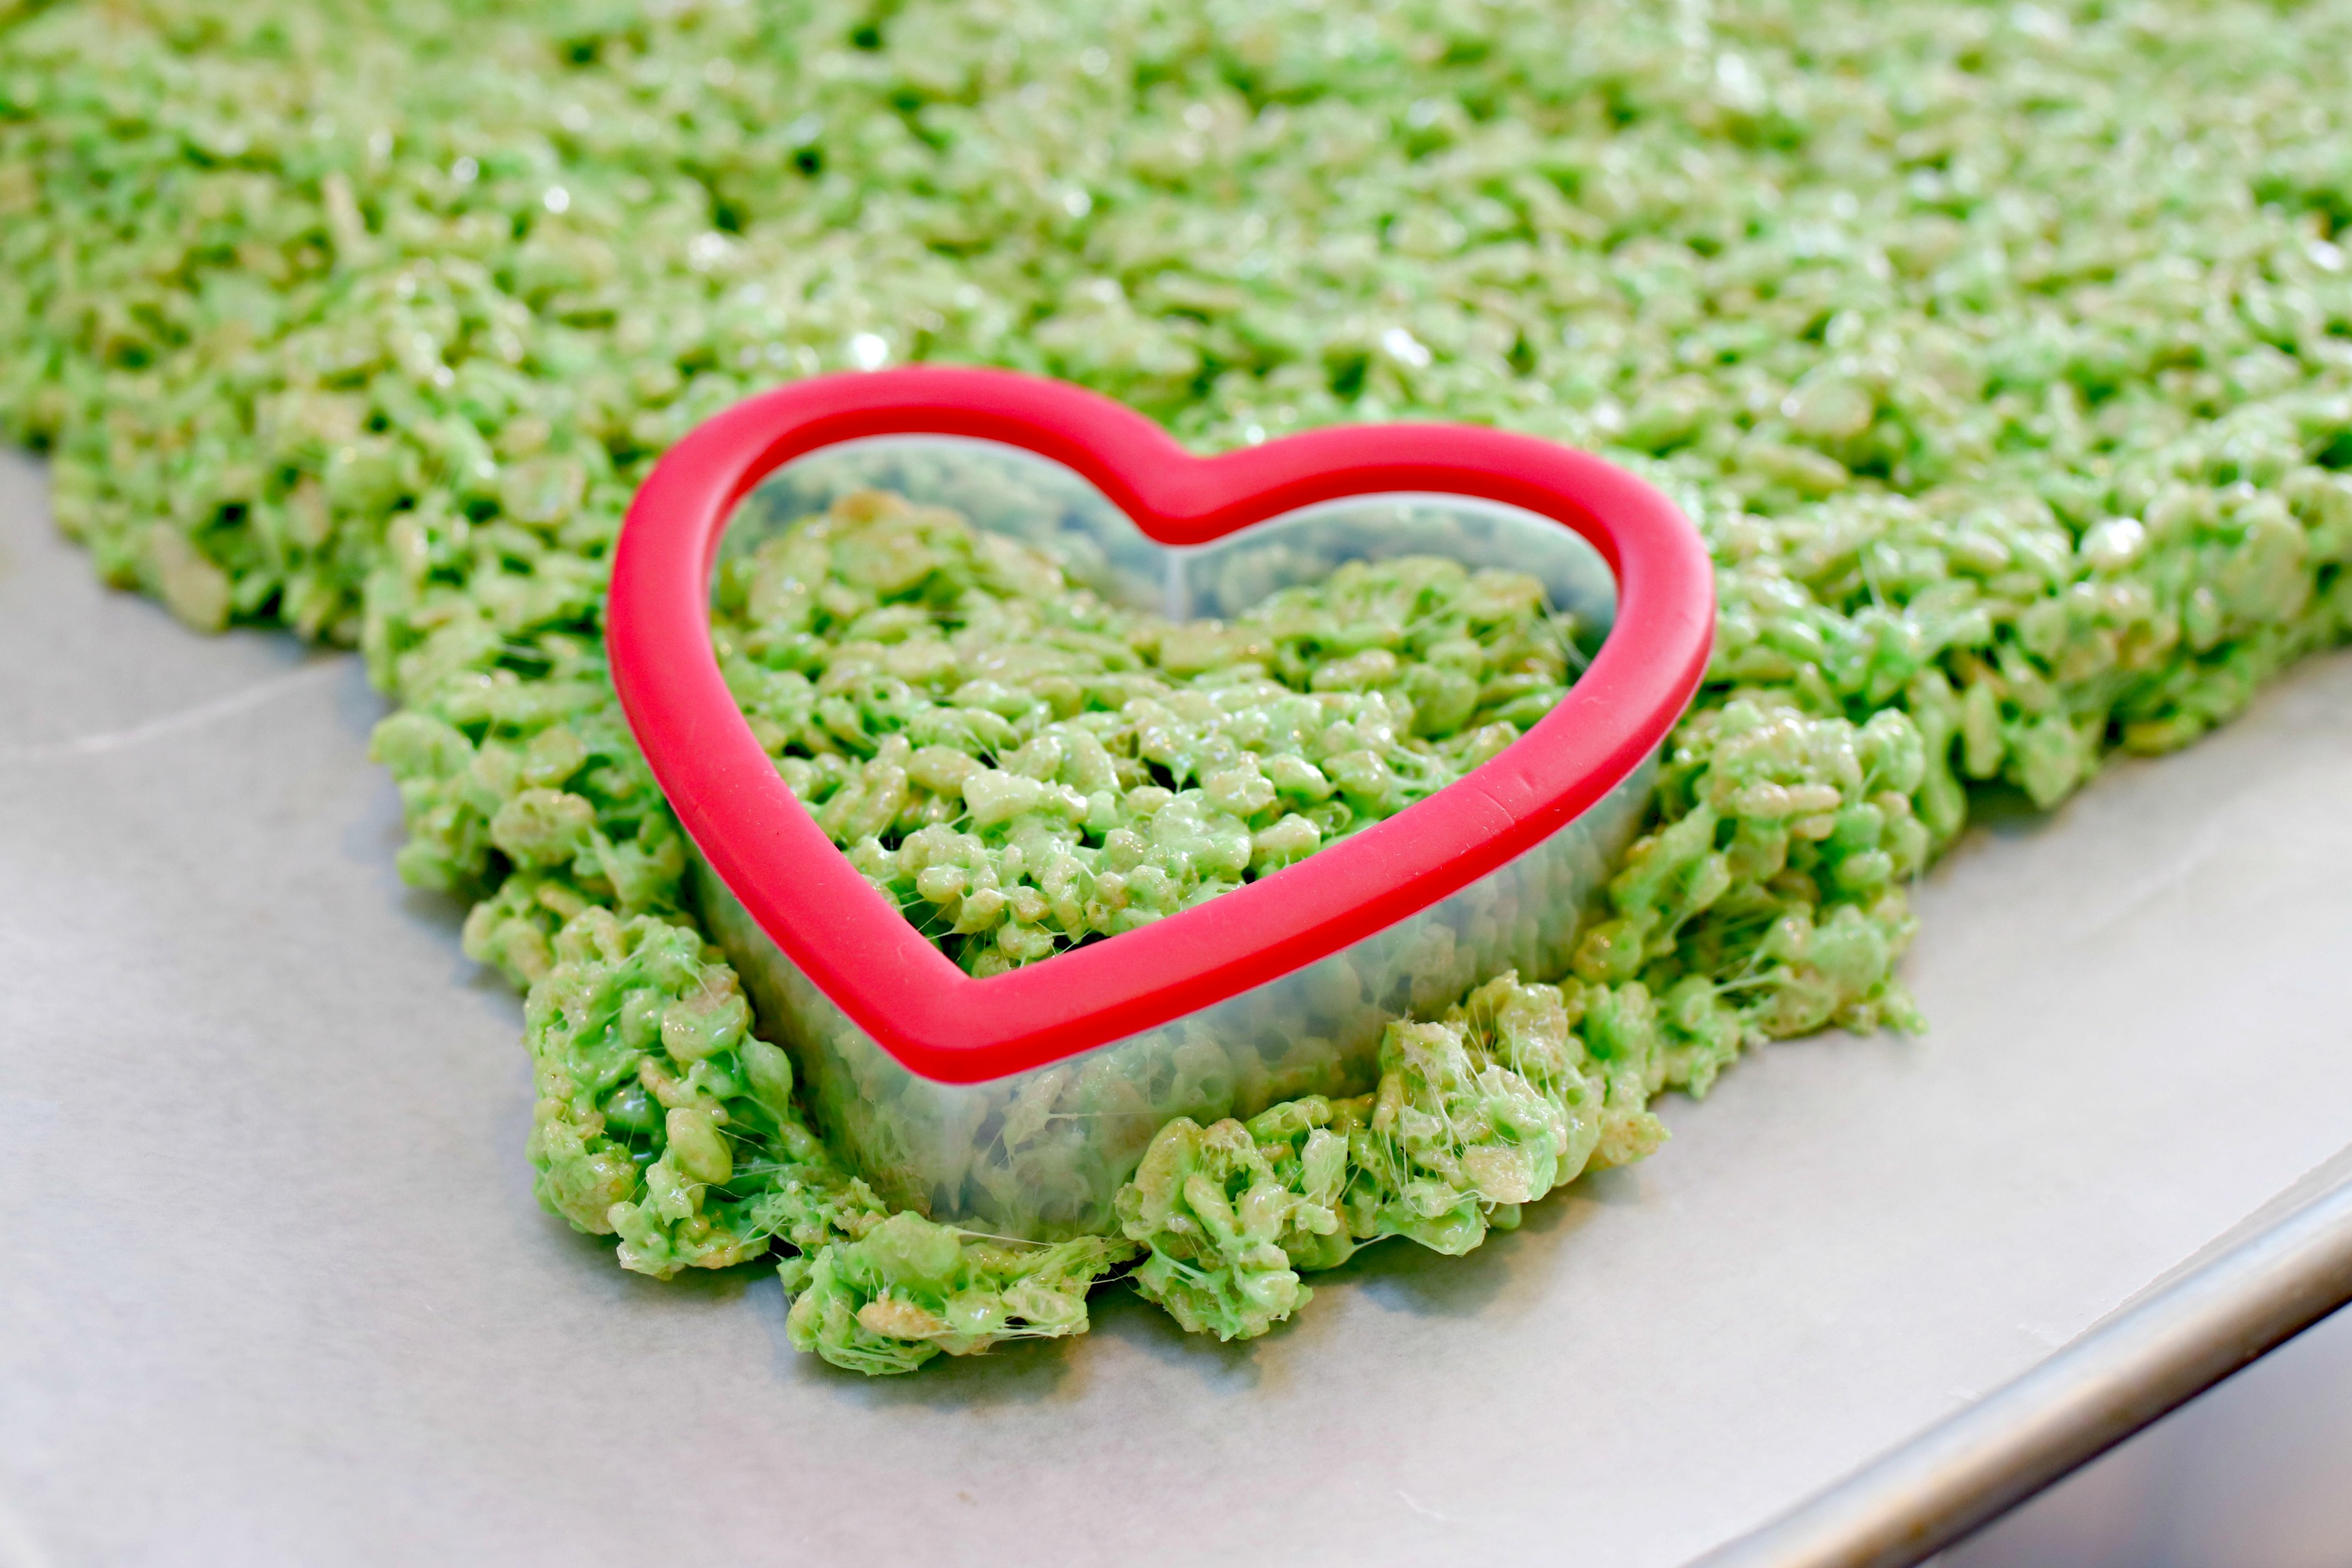 heart shaped cookie cutter cutting green Rice Krispie Treats